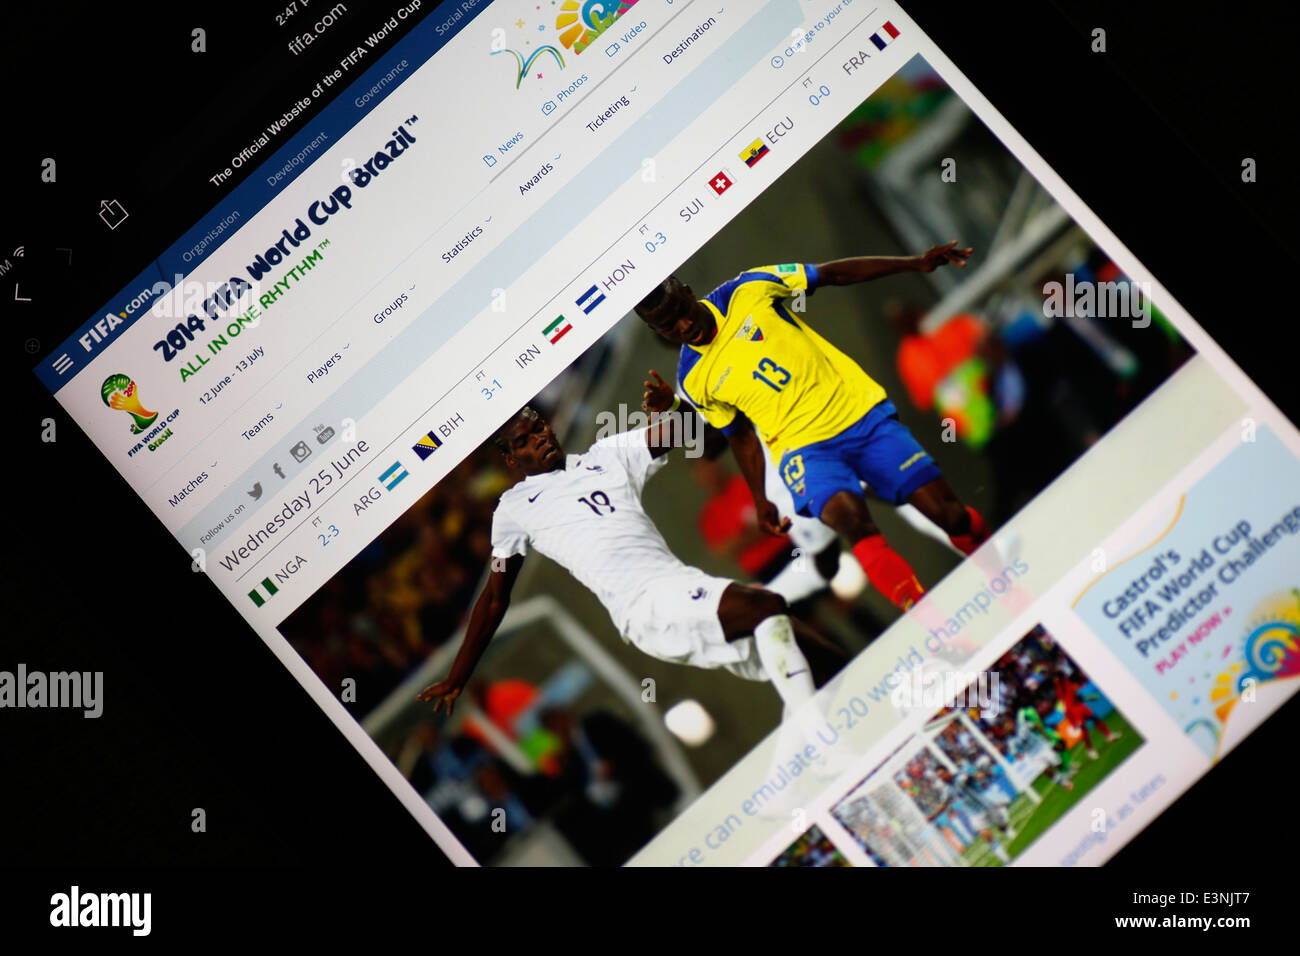 2014 FIFA world cup webpage - Stock Image